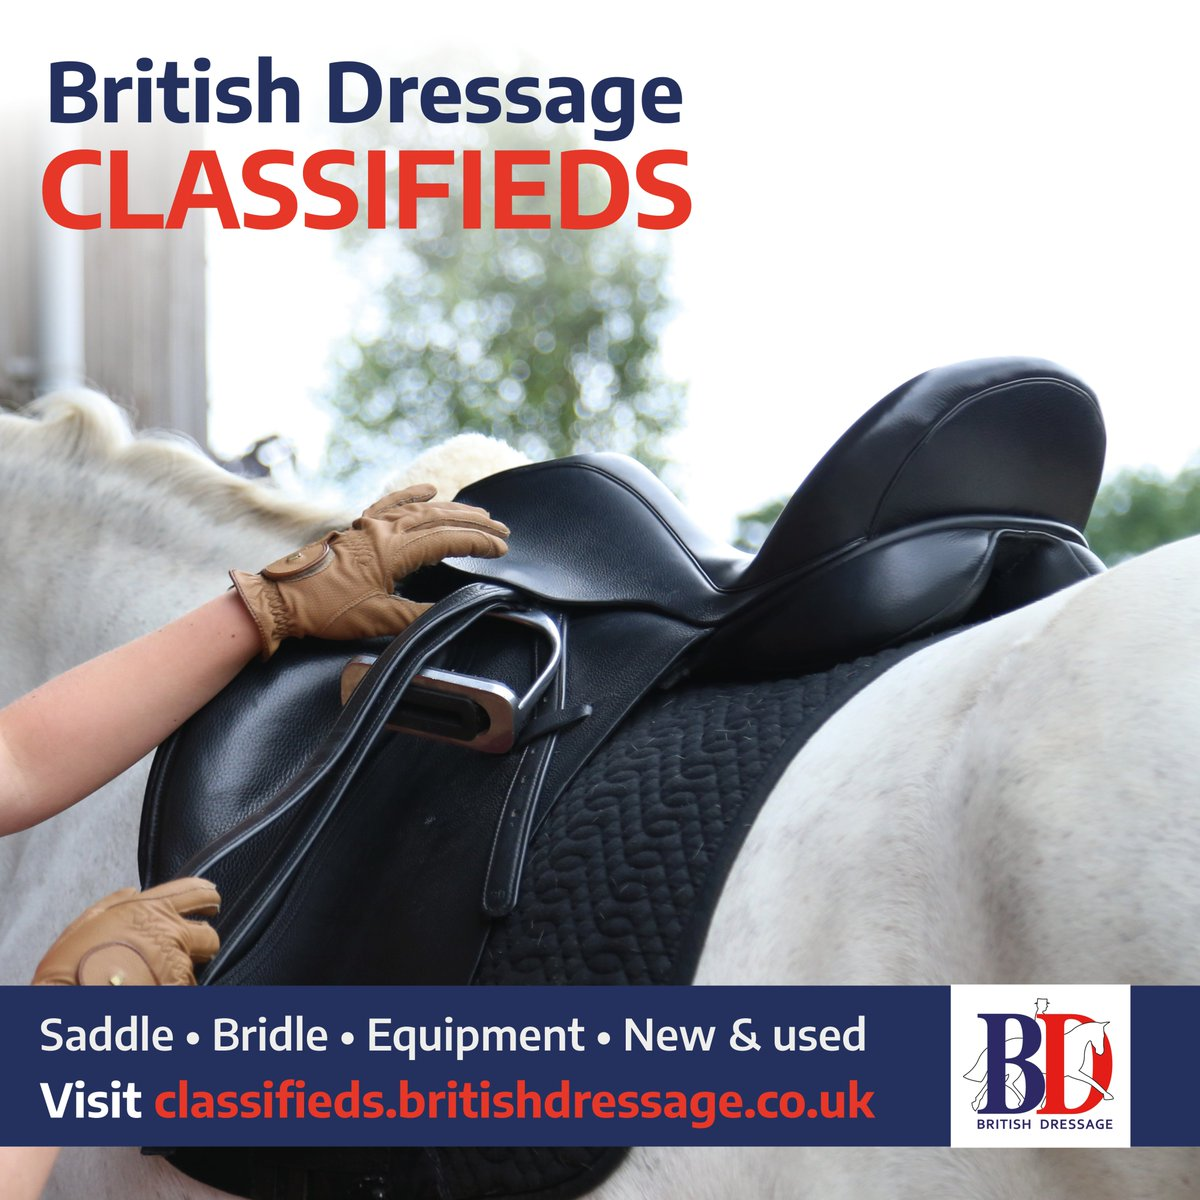 Did you know that you can advertise tack and equipment for horse & rider on our new BD Classifieds?  PLUS For two weeks we're giving you the chance to advertise for FREE💥Read more about our complimentary two week offer and check out BD Classifieds here  https://t.co/OCSZHFHG7g https://t.co/kGkodM1Zi3